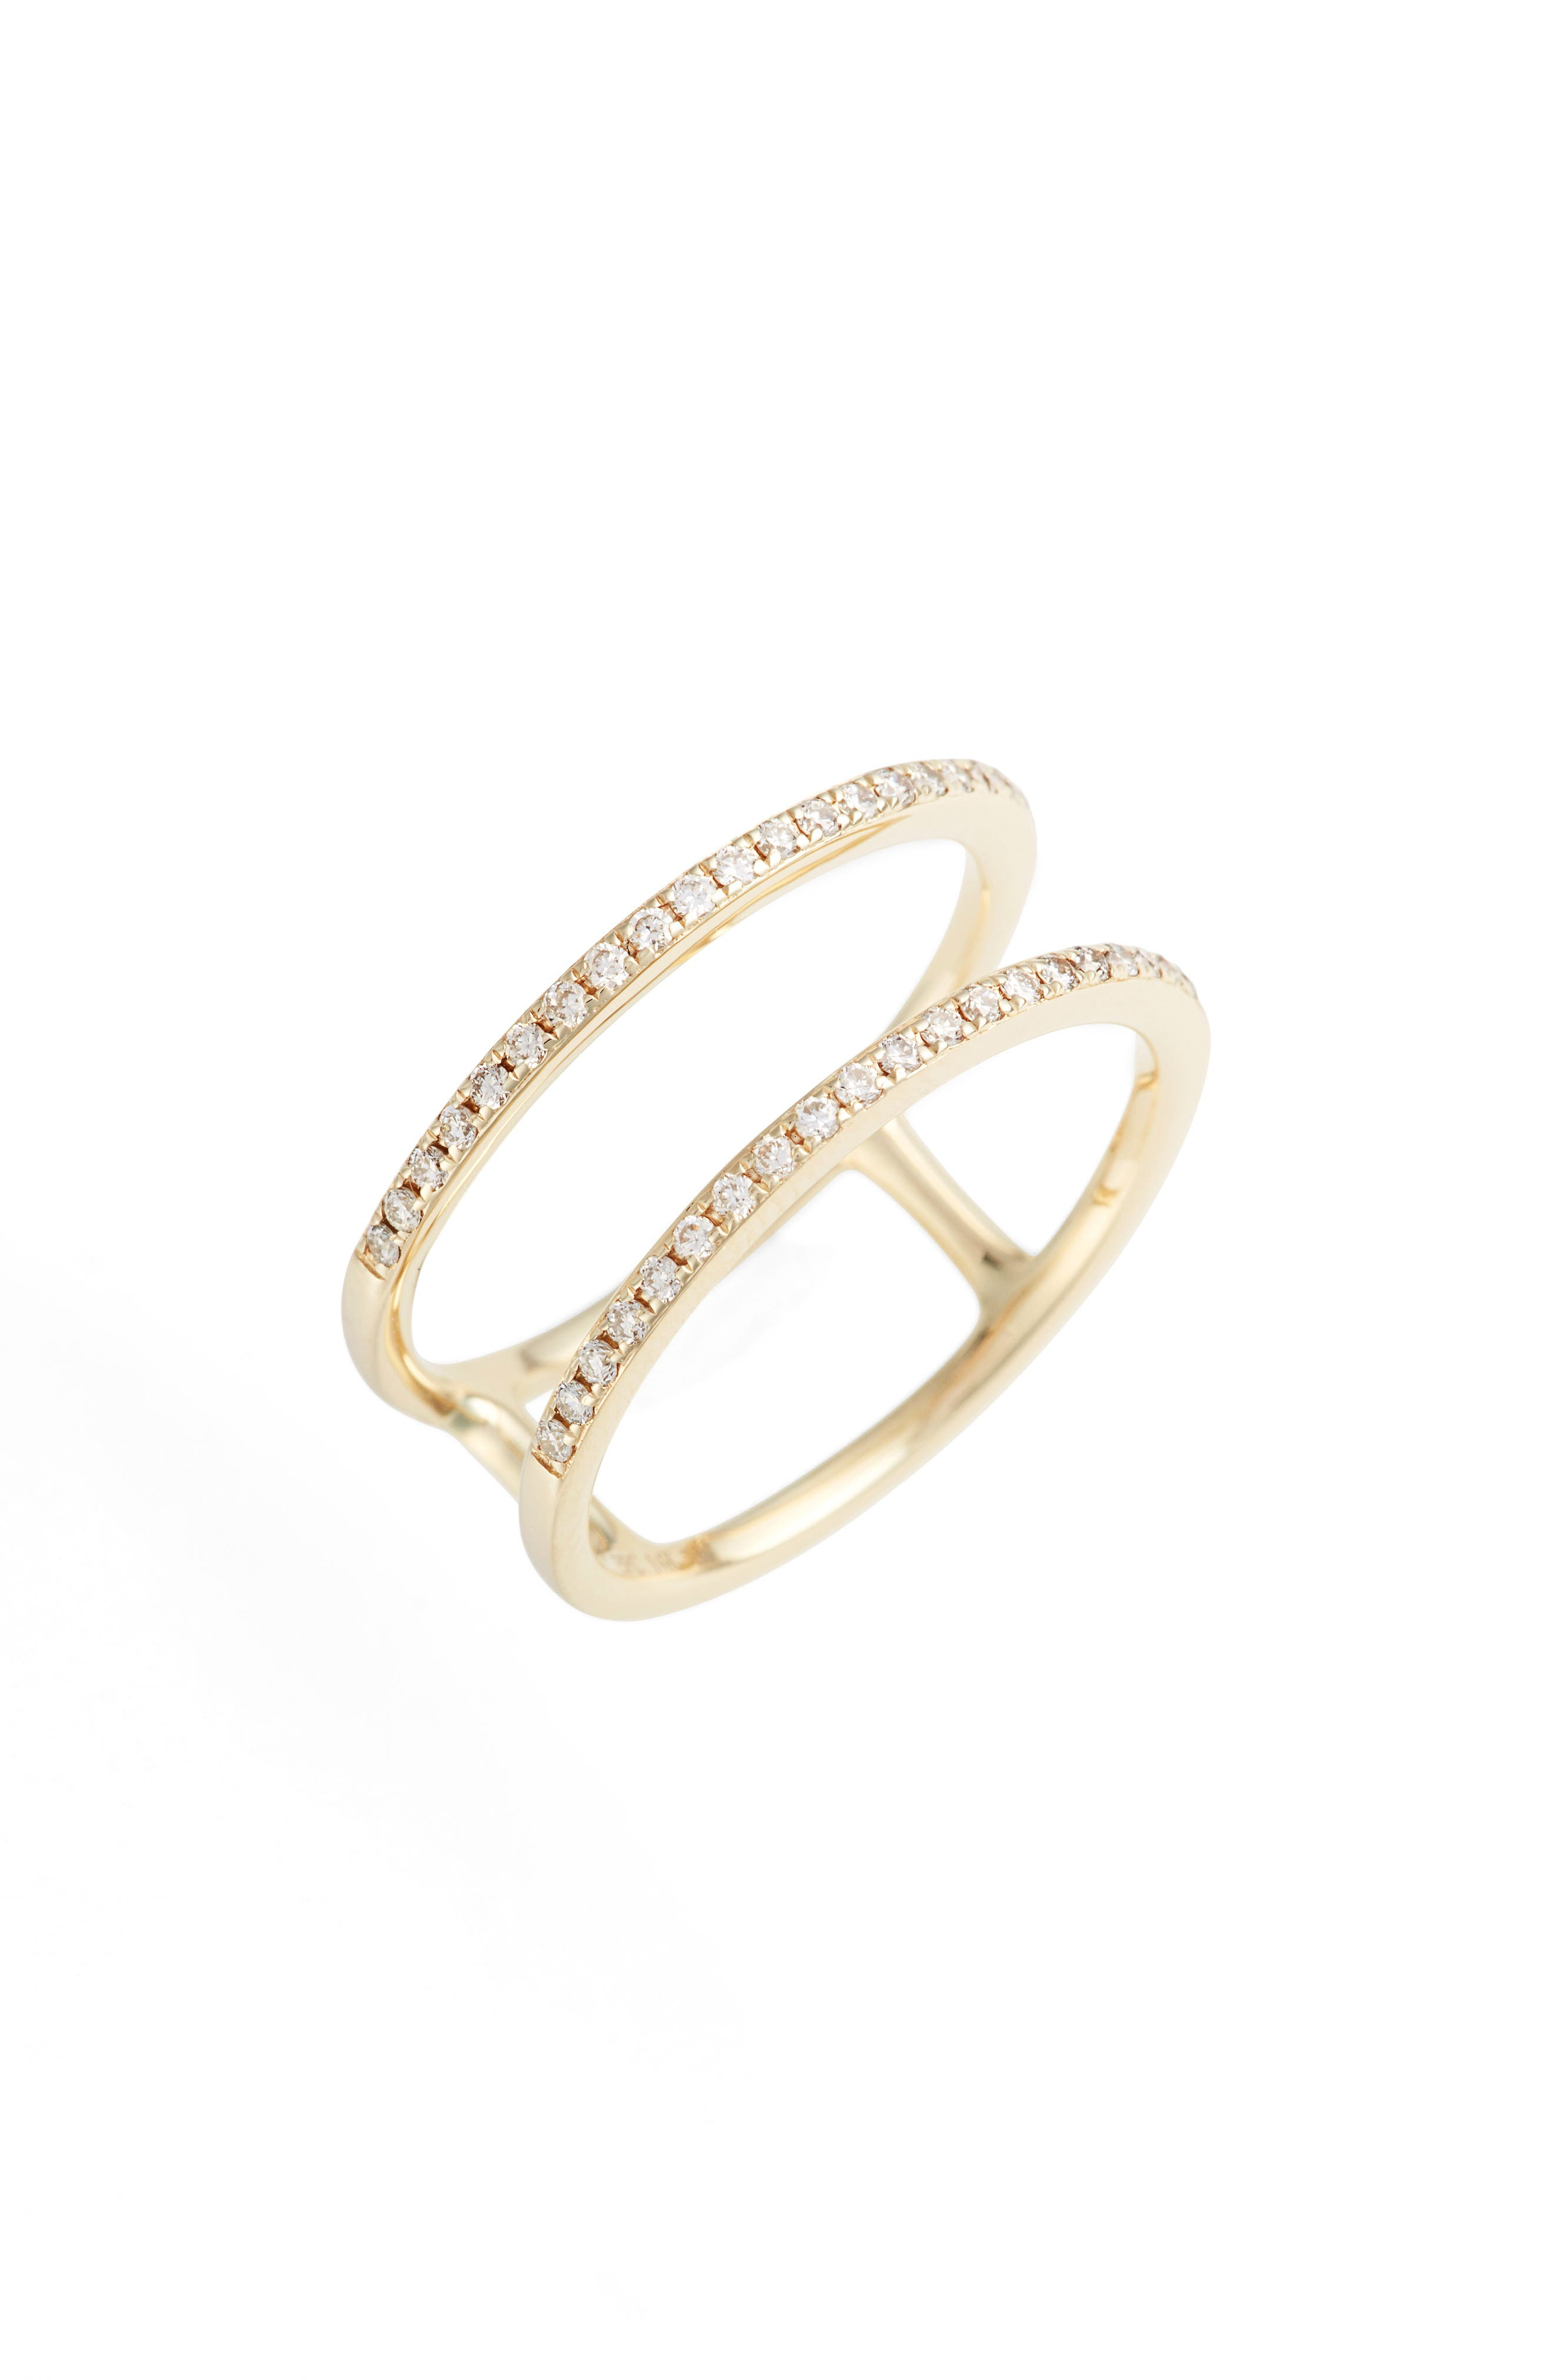 Main Image - EF COLLECTION Double Row Diamond Ring